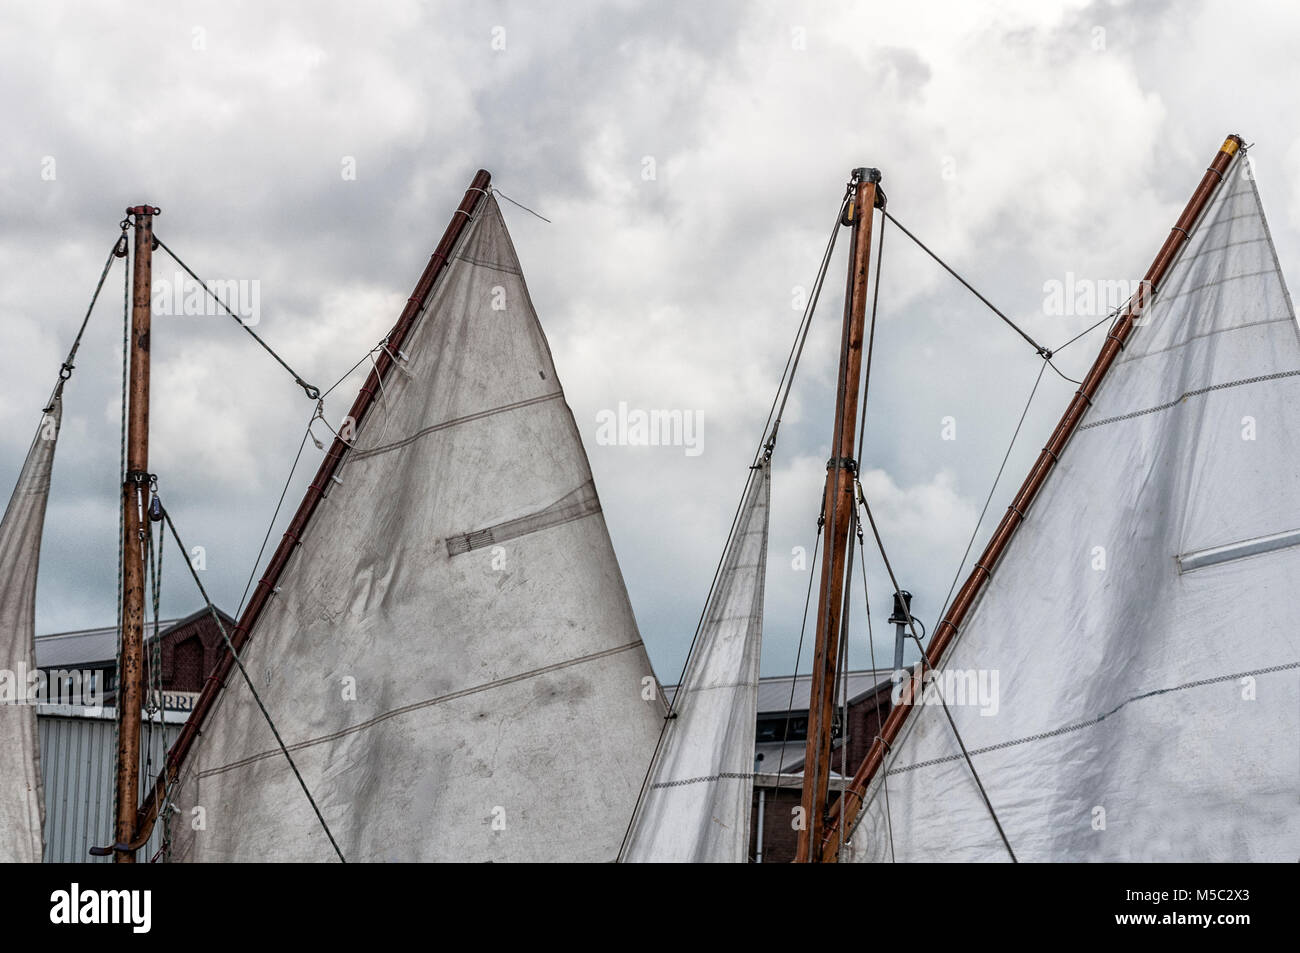 mainsail of a sail ship docked in the harbour - Stock Image